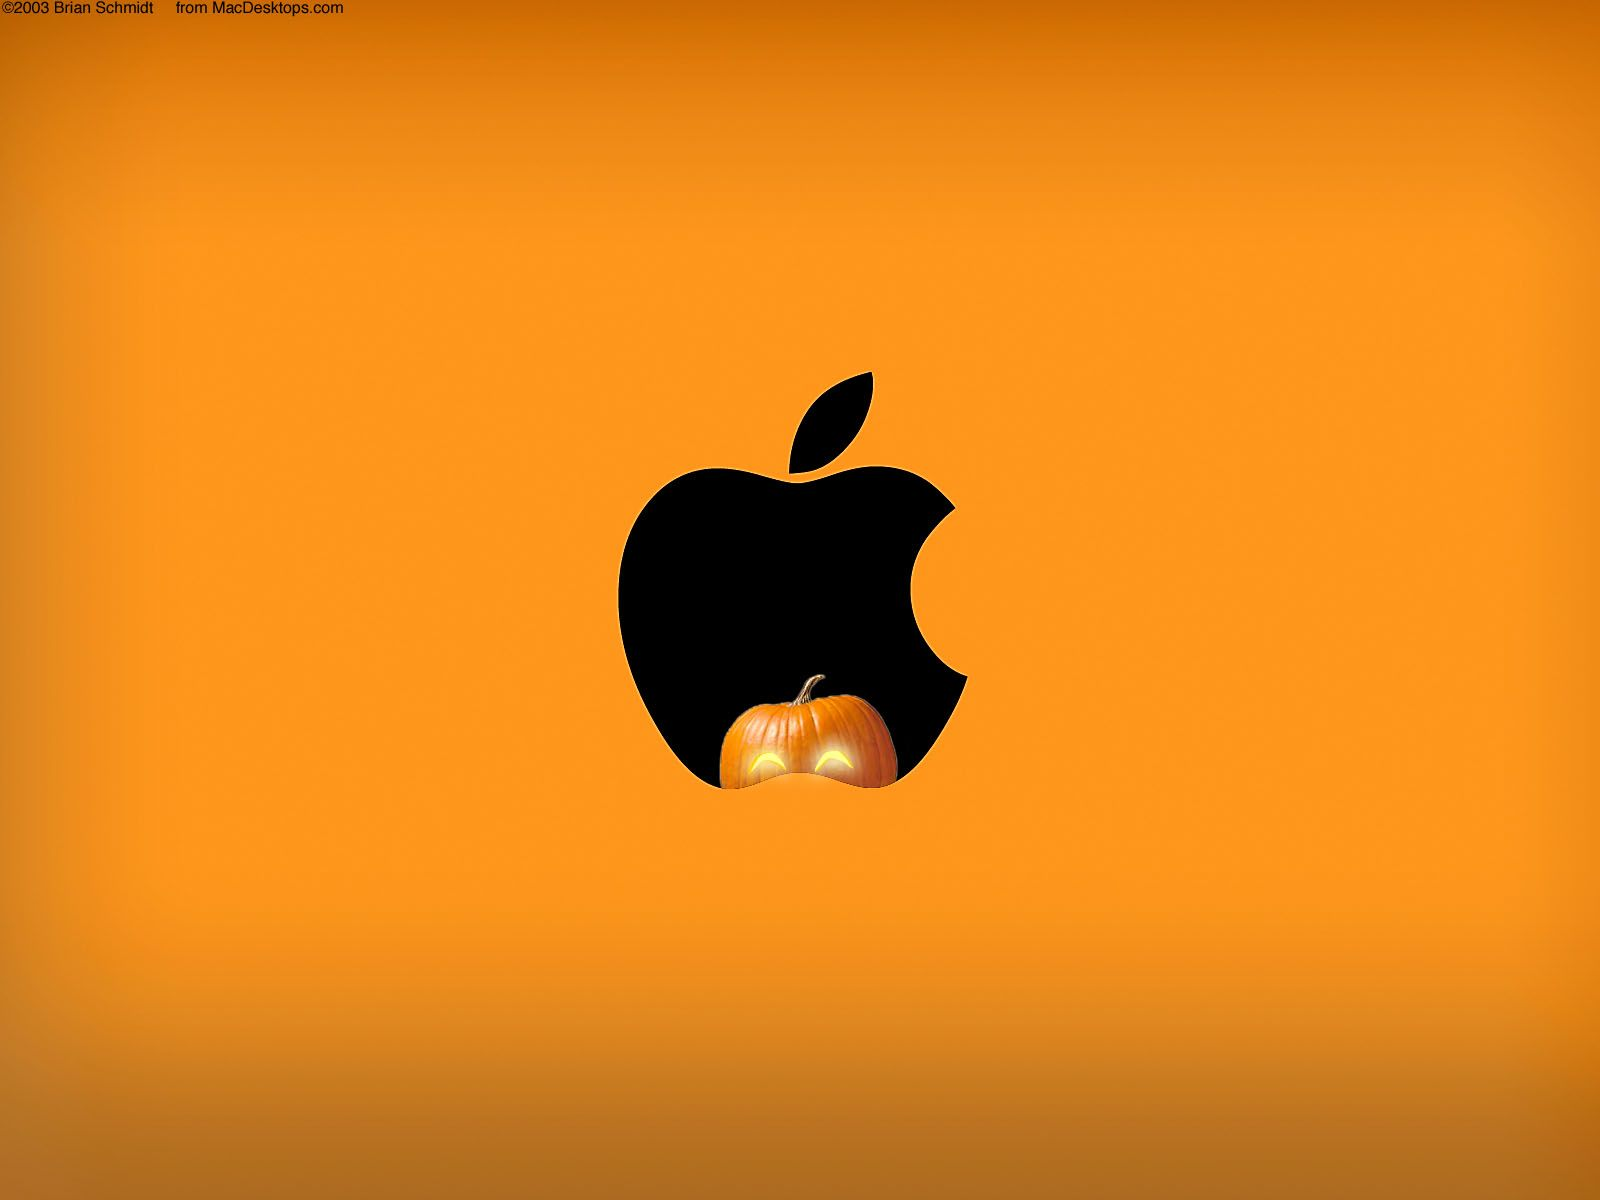 Download Wallpaper Macbook Halloween - 64e63fec775aaf17abcf364c94676877  Trends_67726.jpg